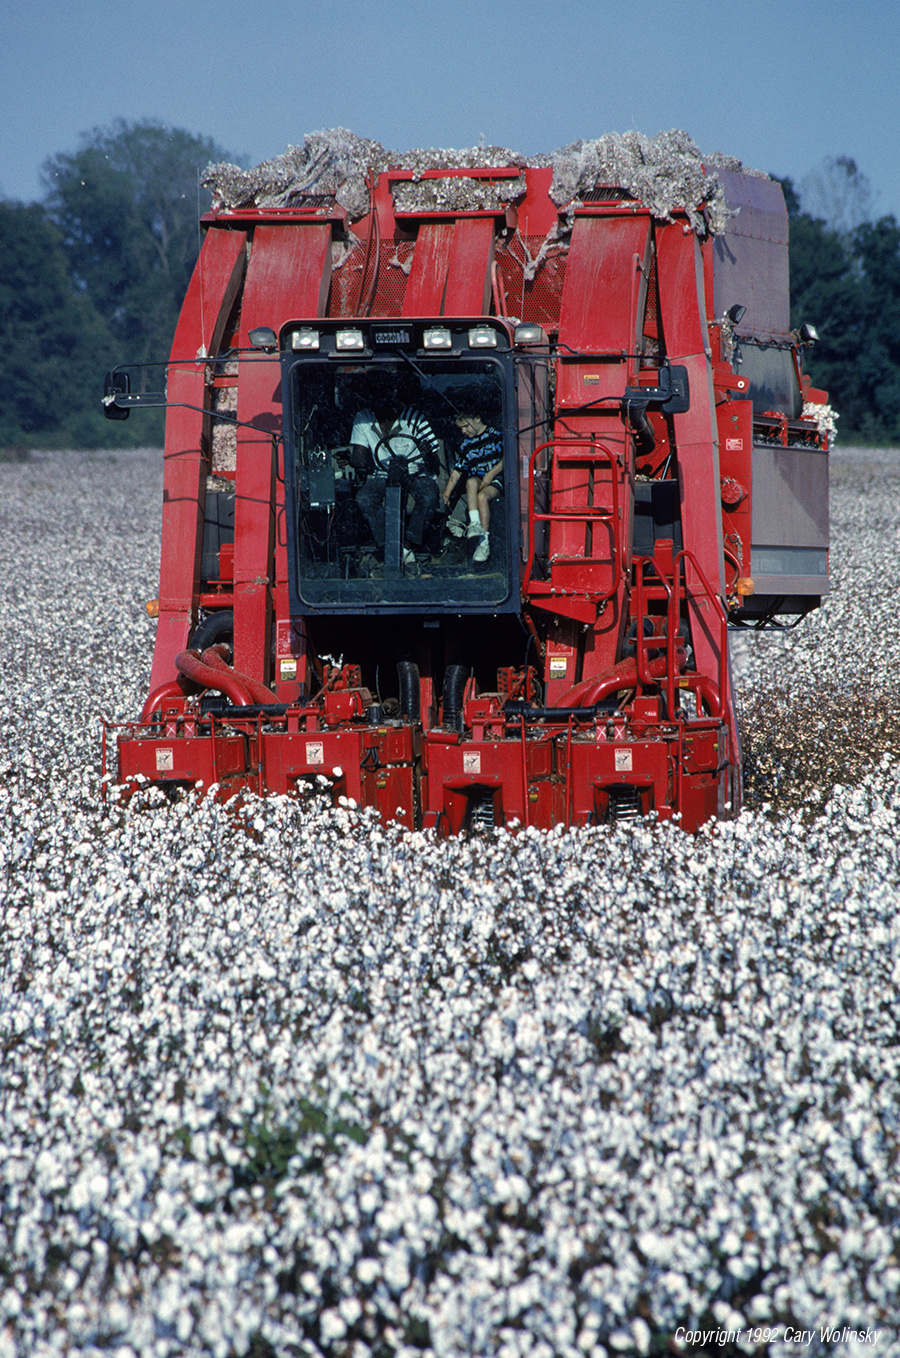 In a field of mature cotton, a four-row harvester removes the bolls. Greenwood, Mississippi.